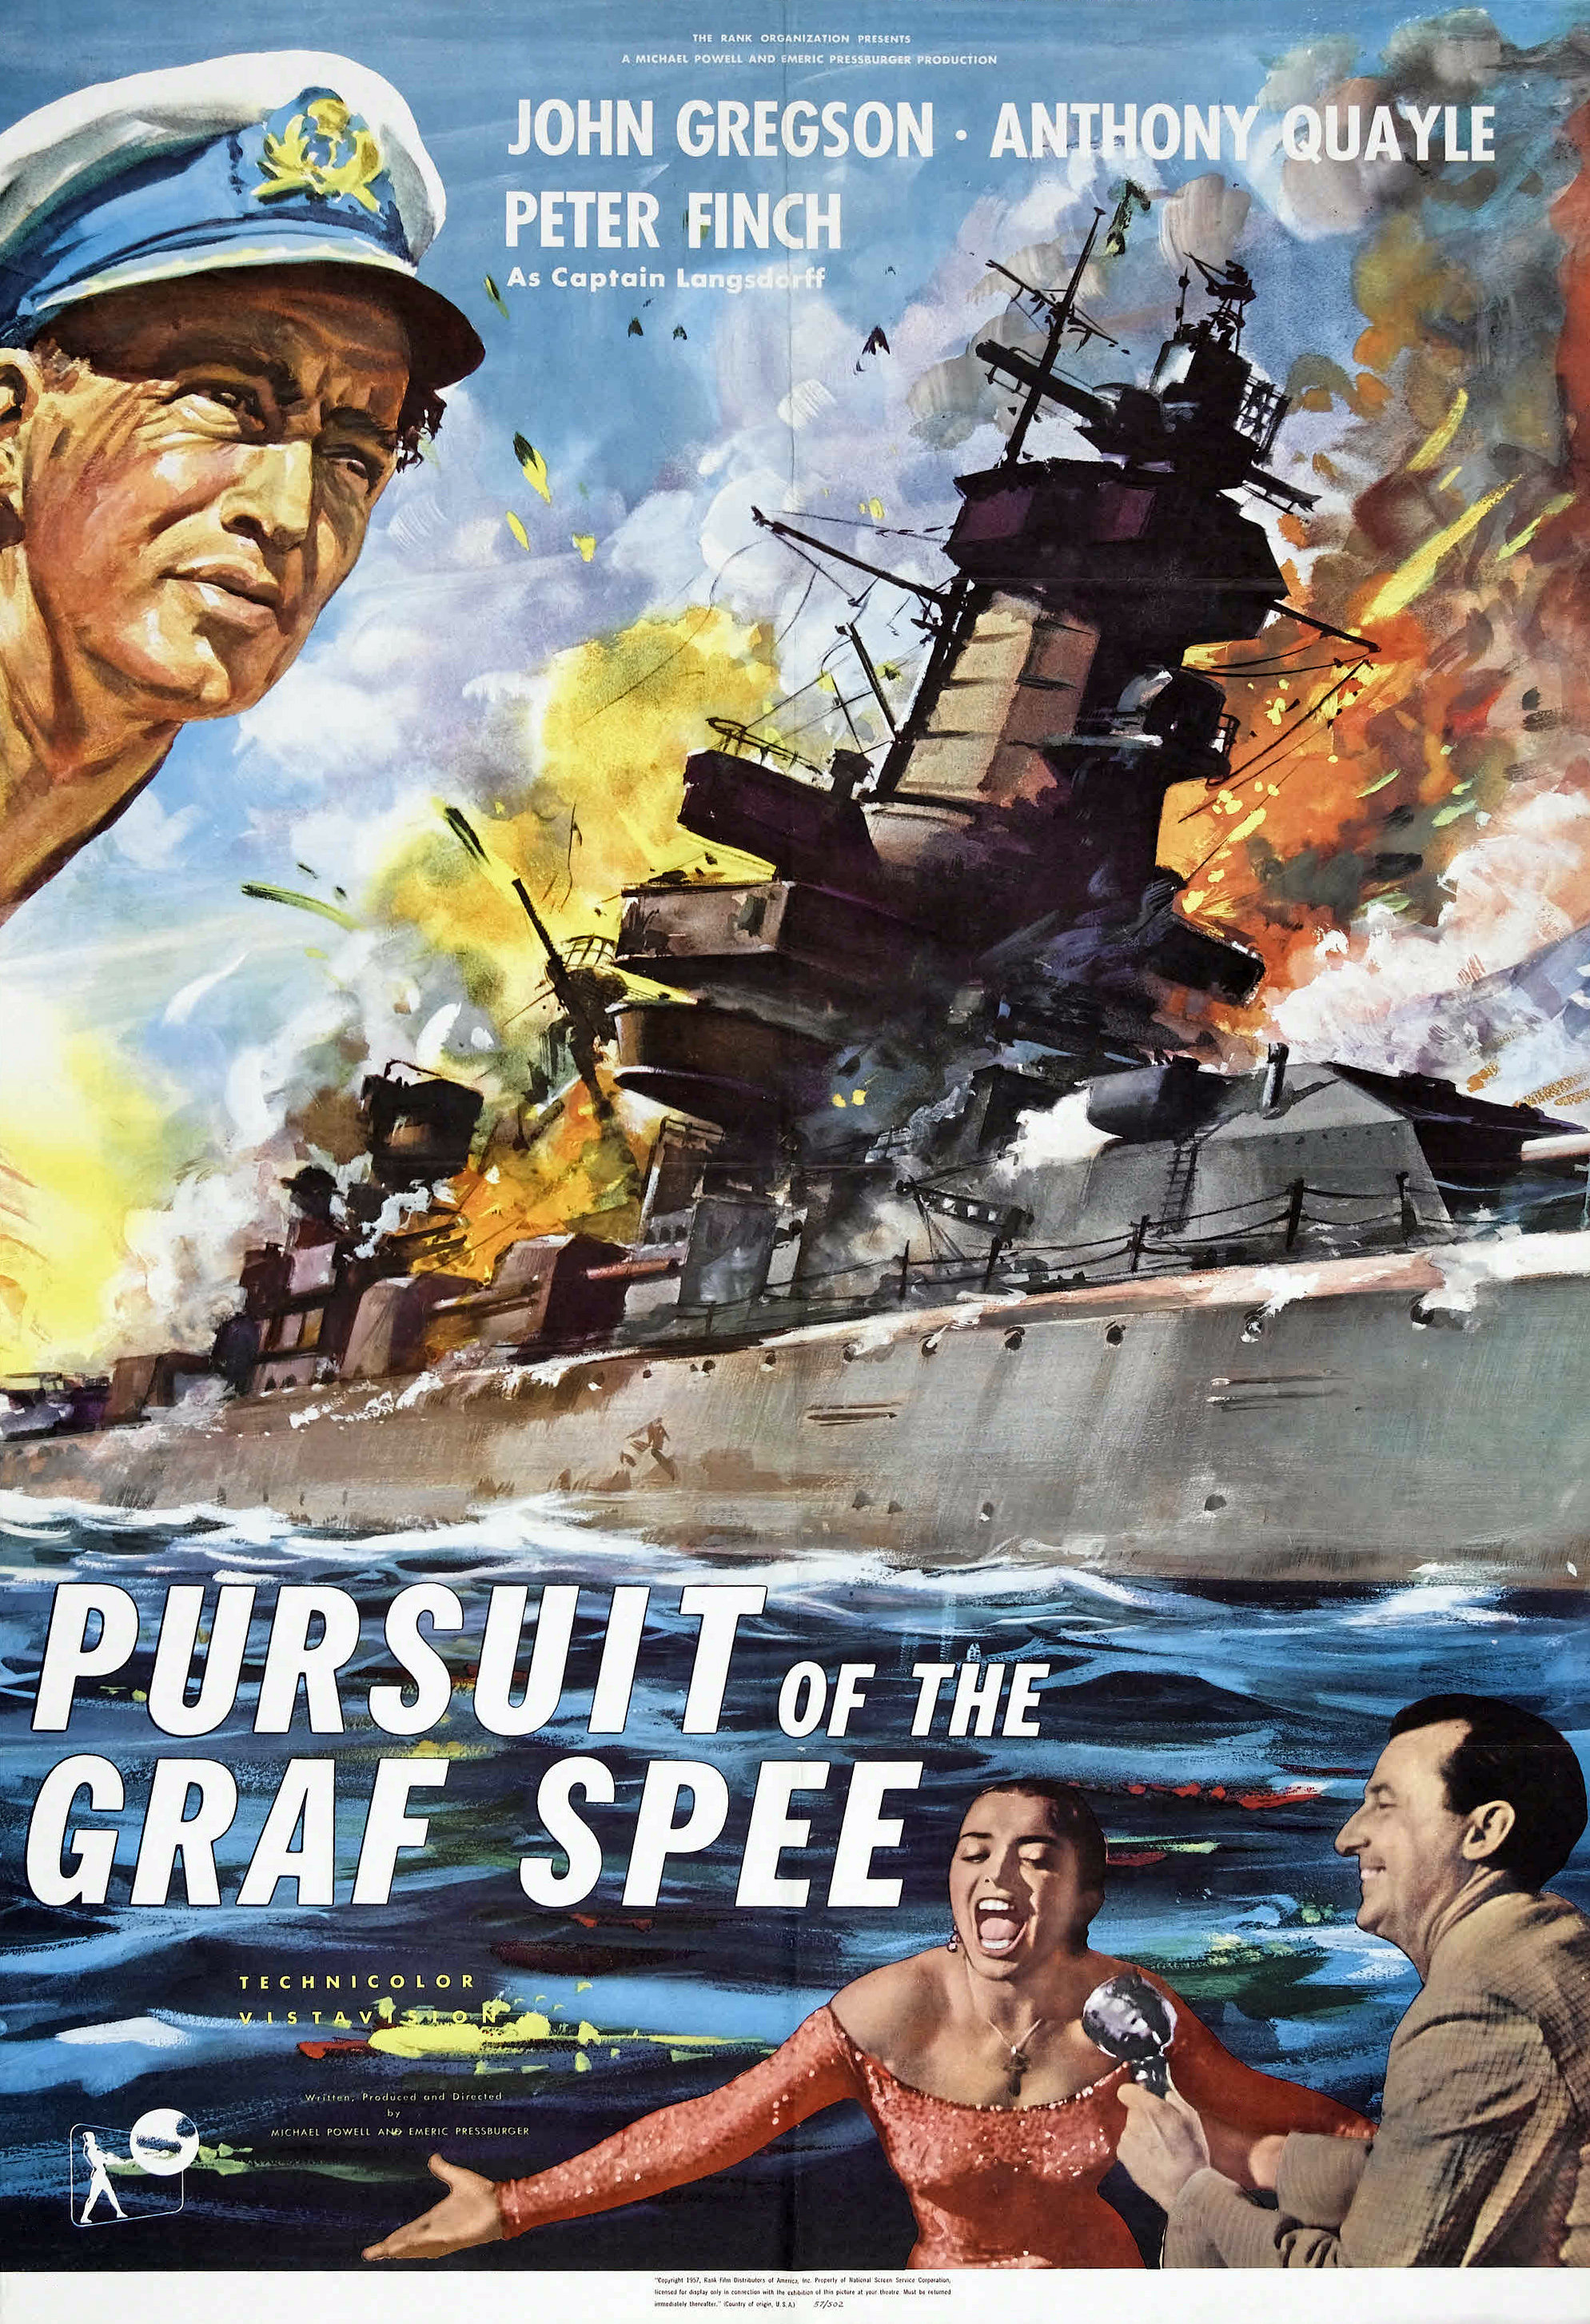 Pursuit of the graff spee movie